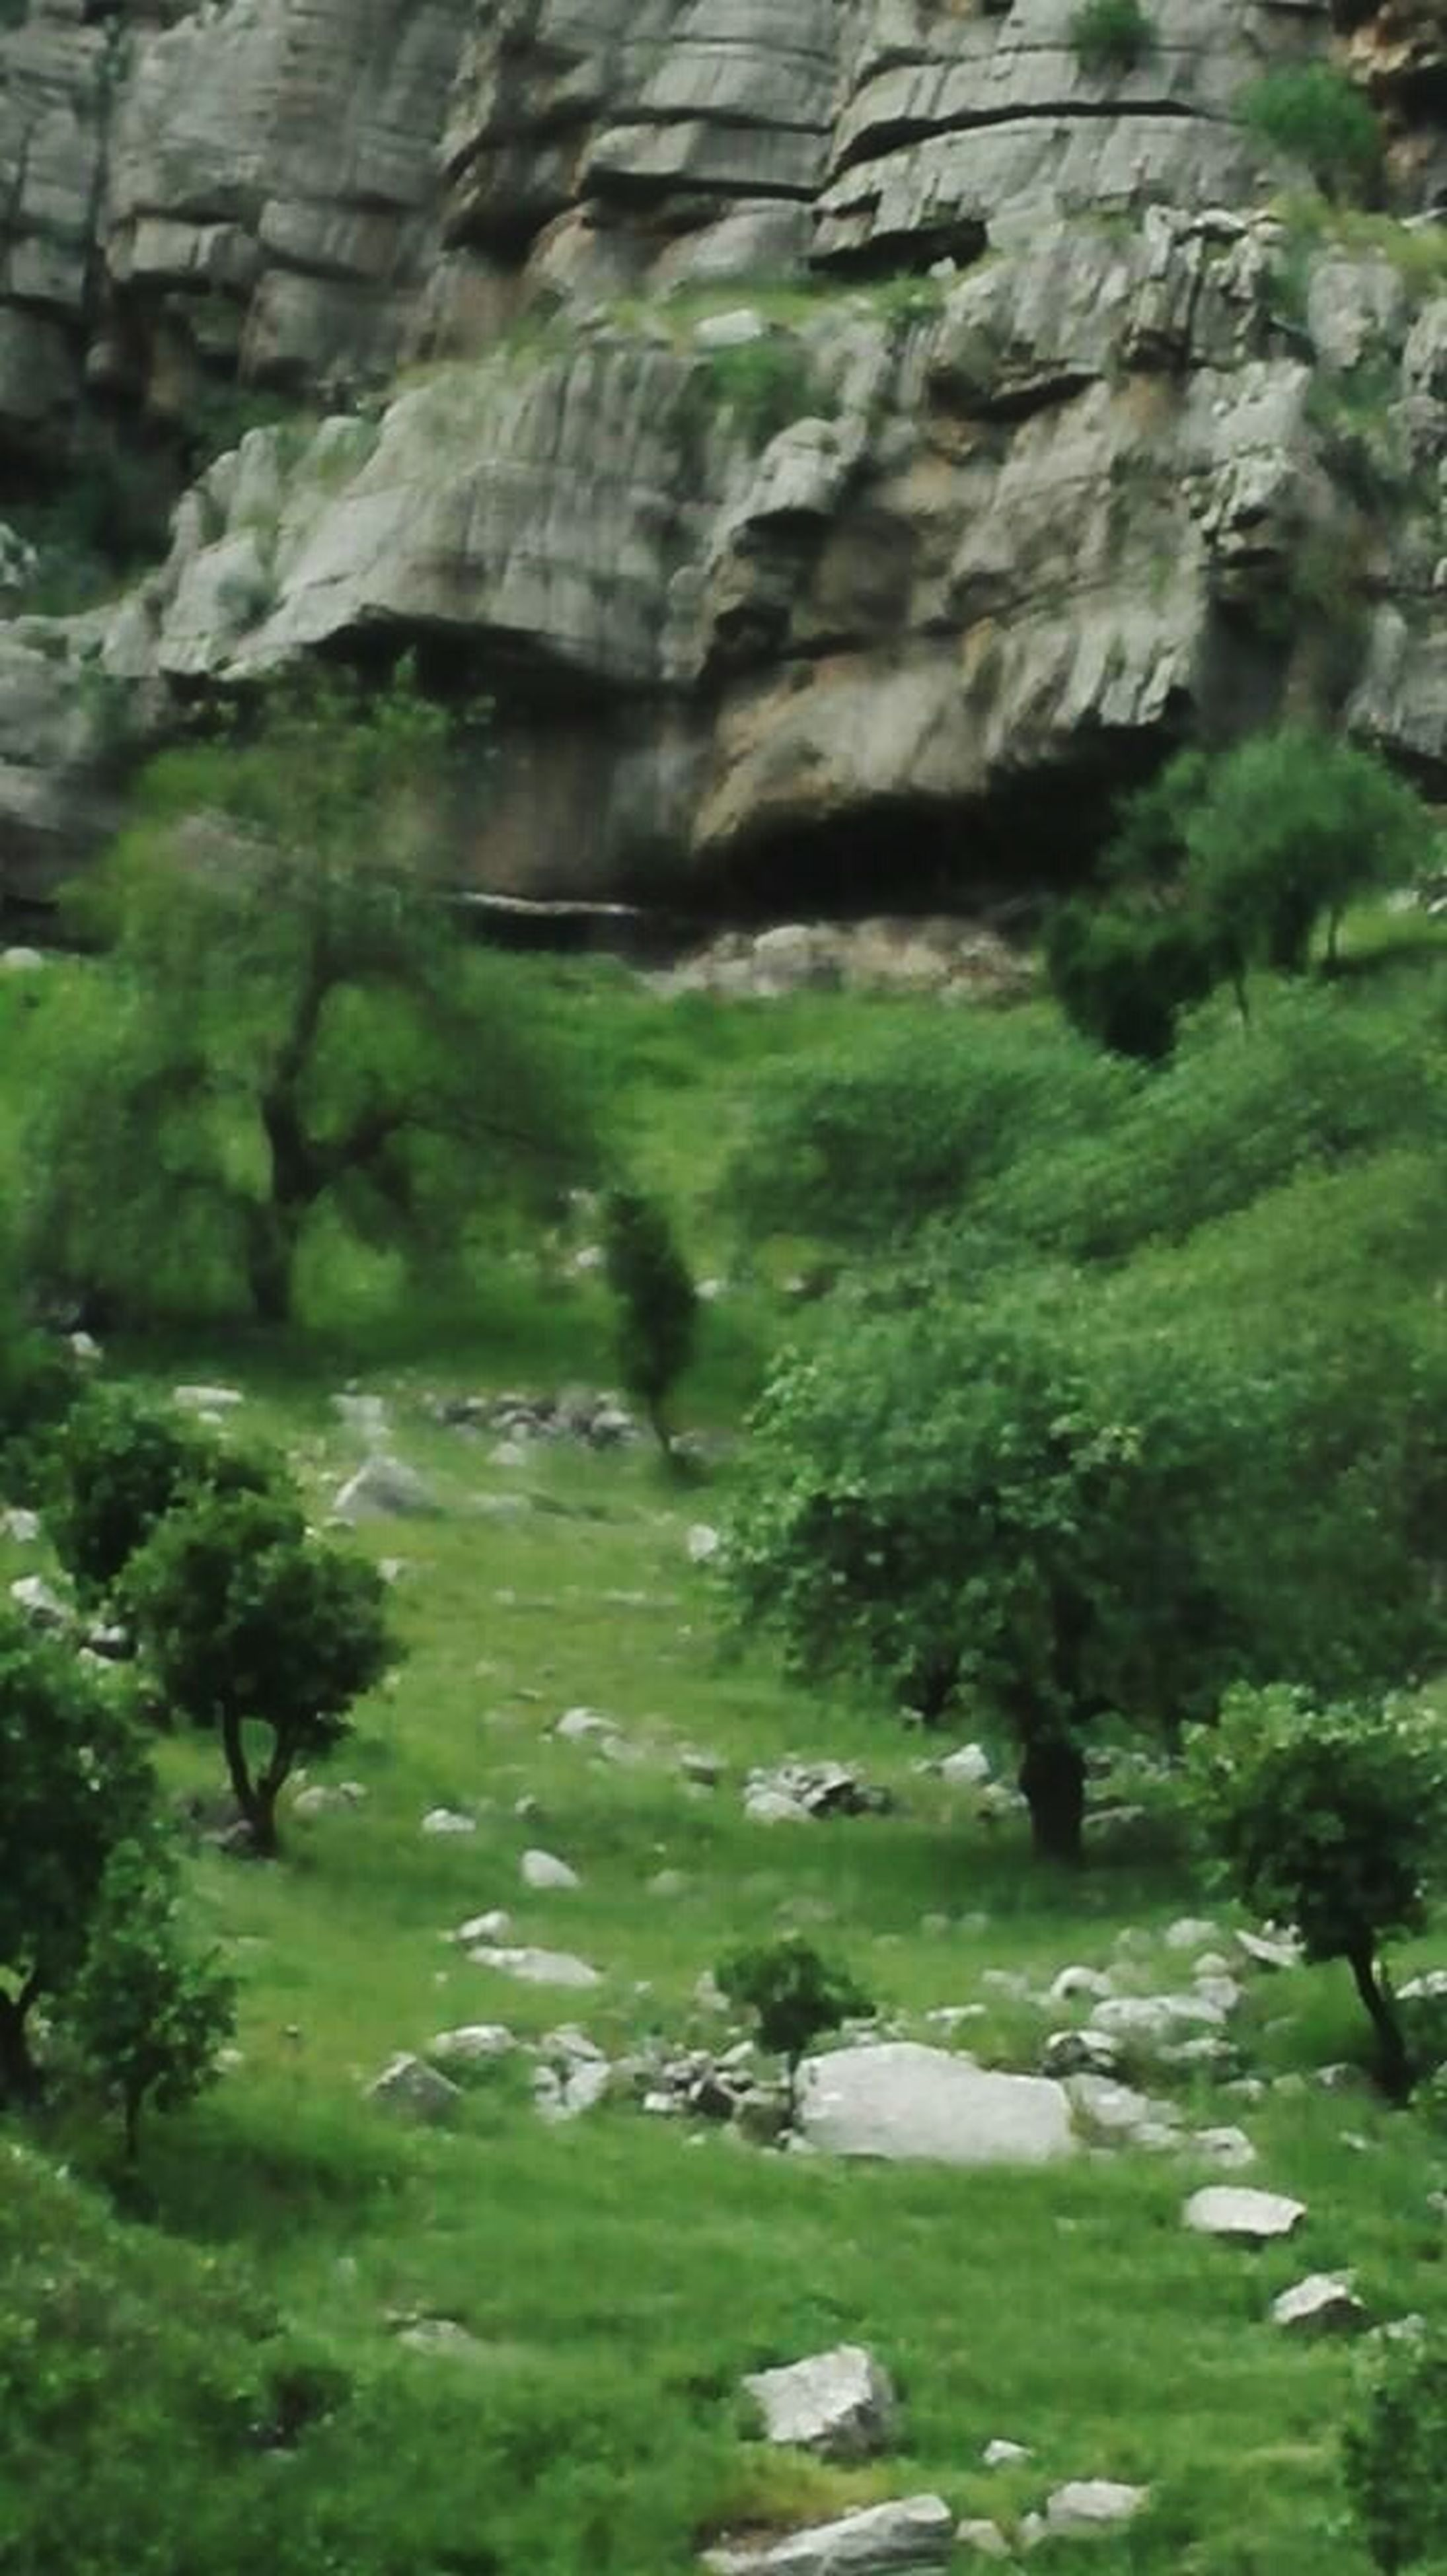 rock - object, nature, green color, no people, tranquility, beauty in nature, day, outdoors, scenics, water, tree